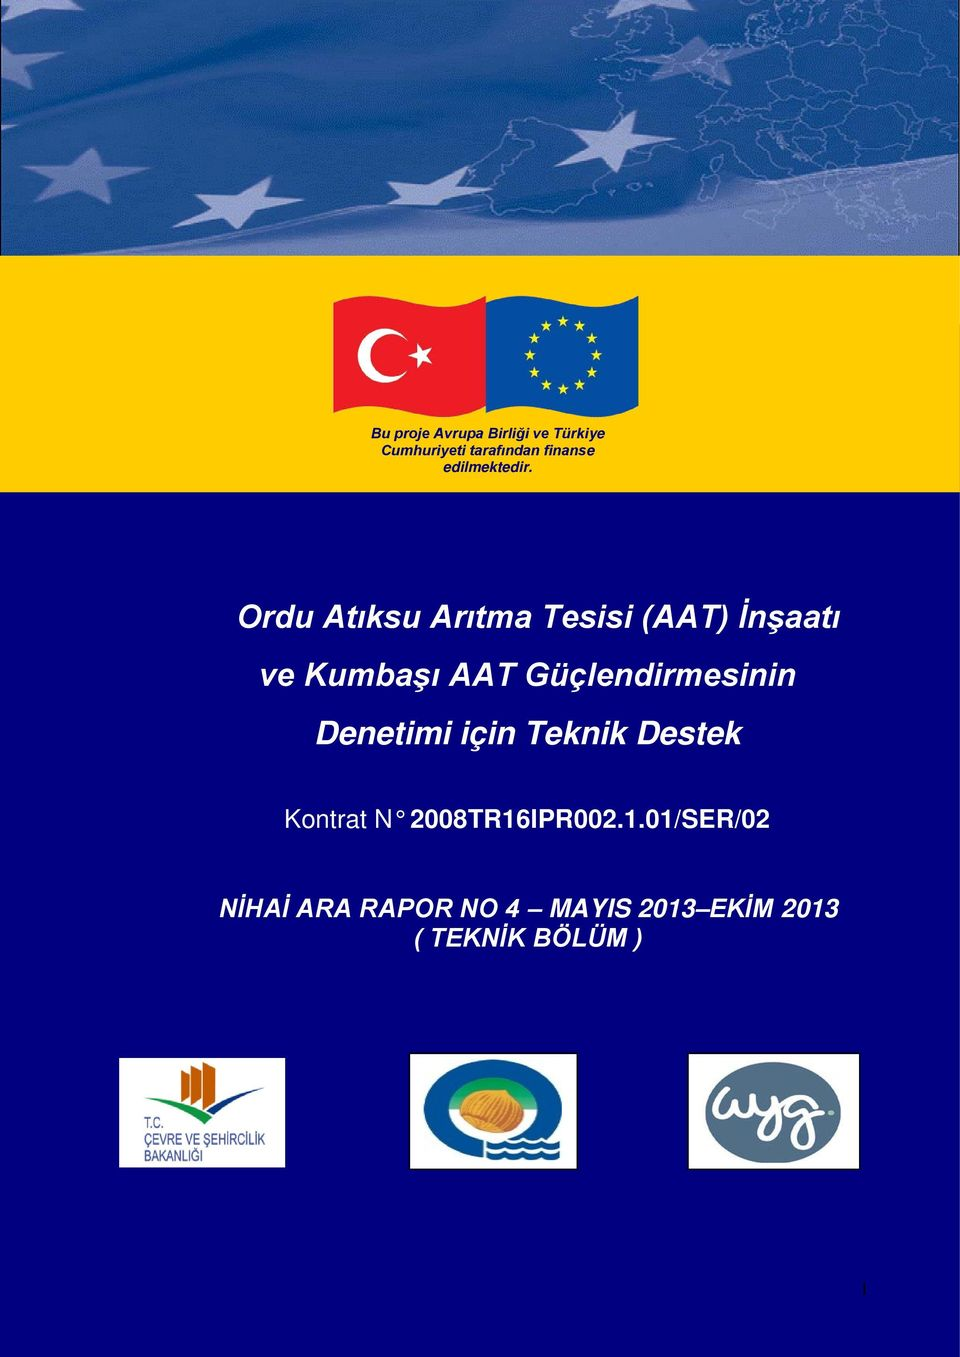 Needs Assessment on Turkish Traffic Police (DGCA) Ordu Atıksu Arıtma Tesisi (AAT)